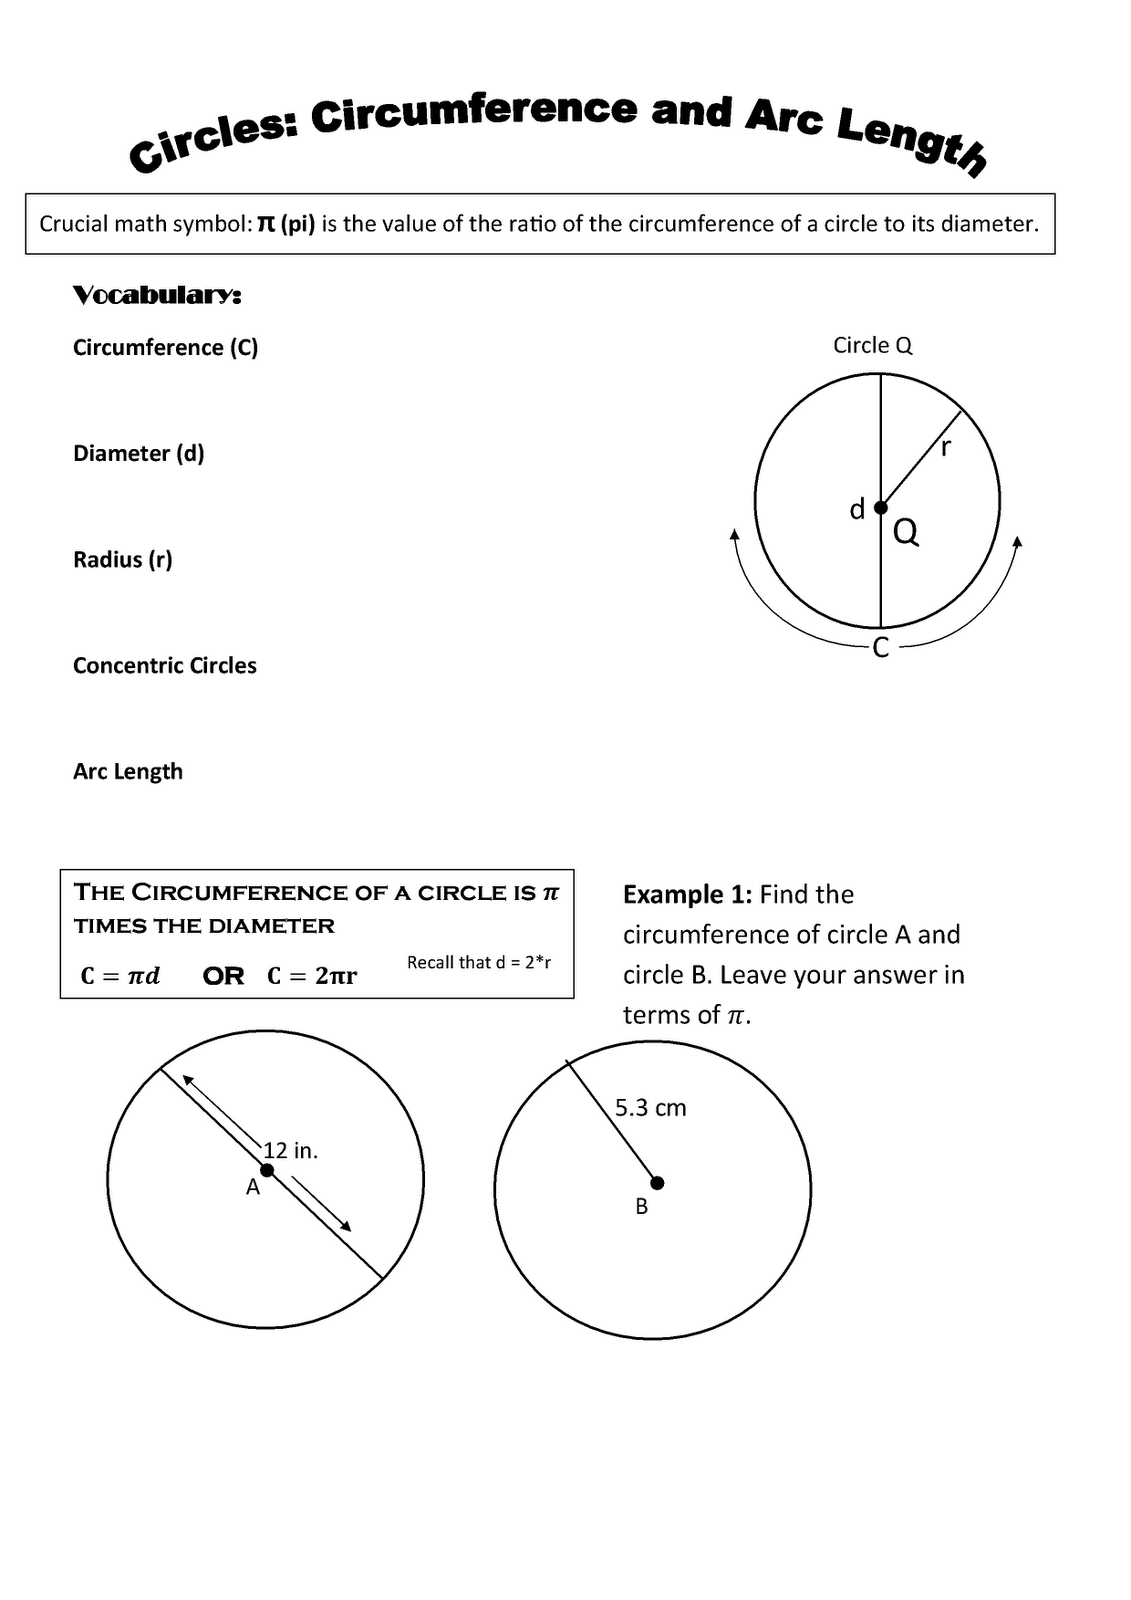 Geometry Chapter 5 7 Circles Circumference And Arc Length